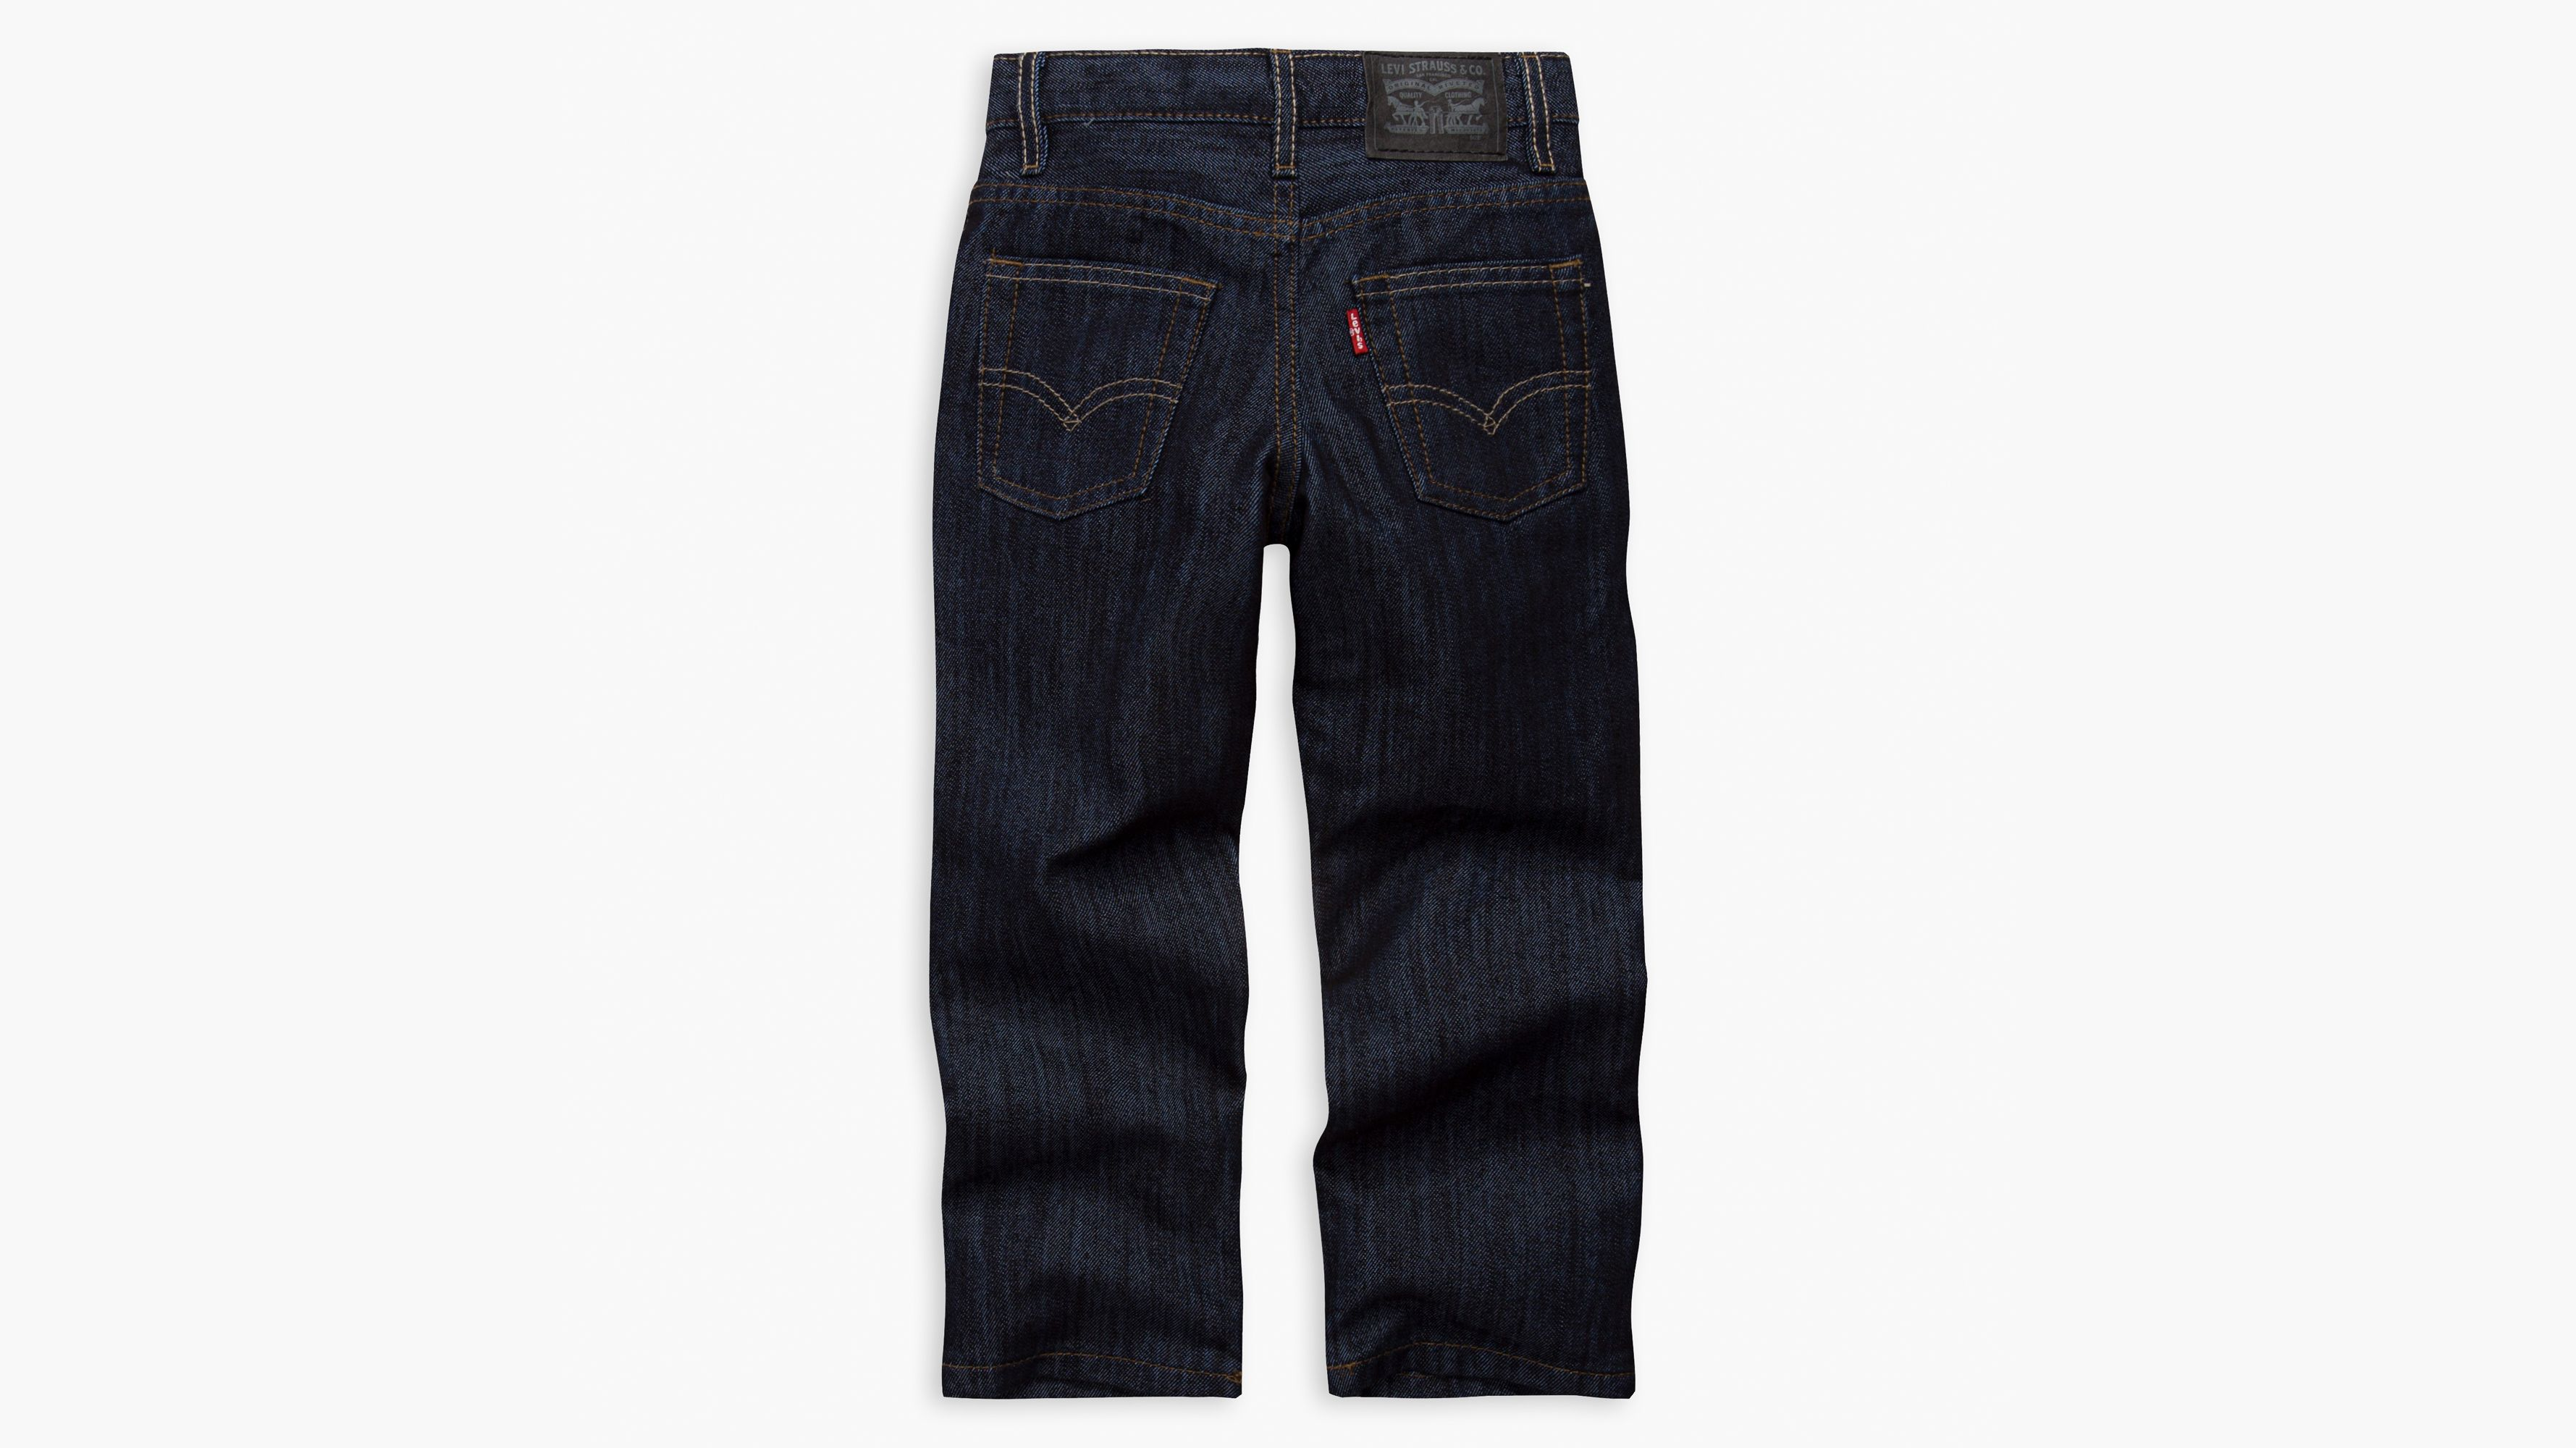 00ff26b934f6 Little Boys 4-7x 511™ Slim Fit Jeans - Dark Wash